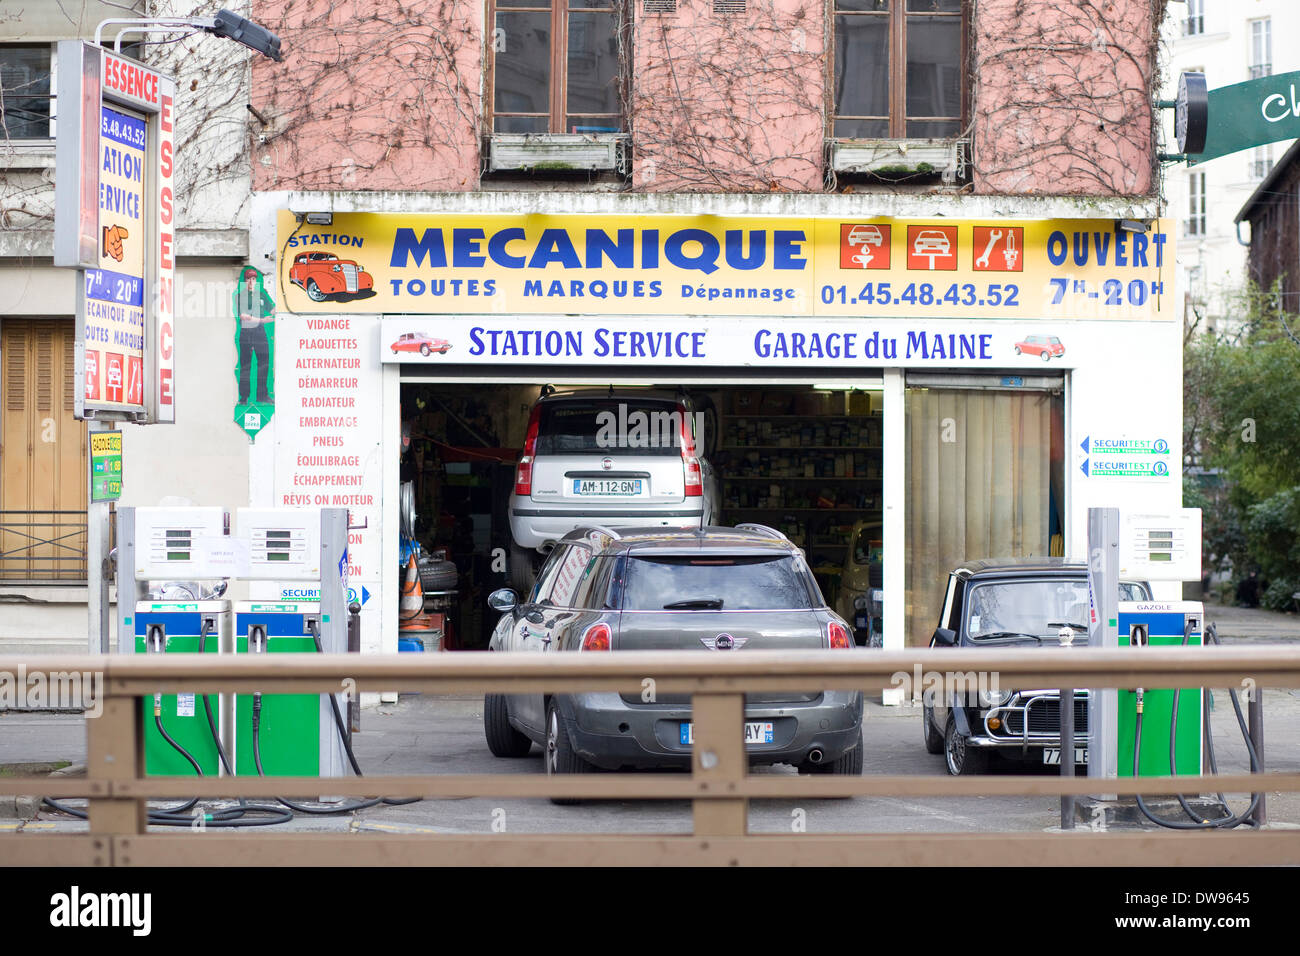 France garage car stockfotos france garage car bilder for Garage automobile paris 13